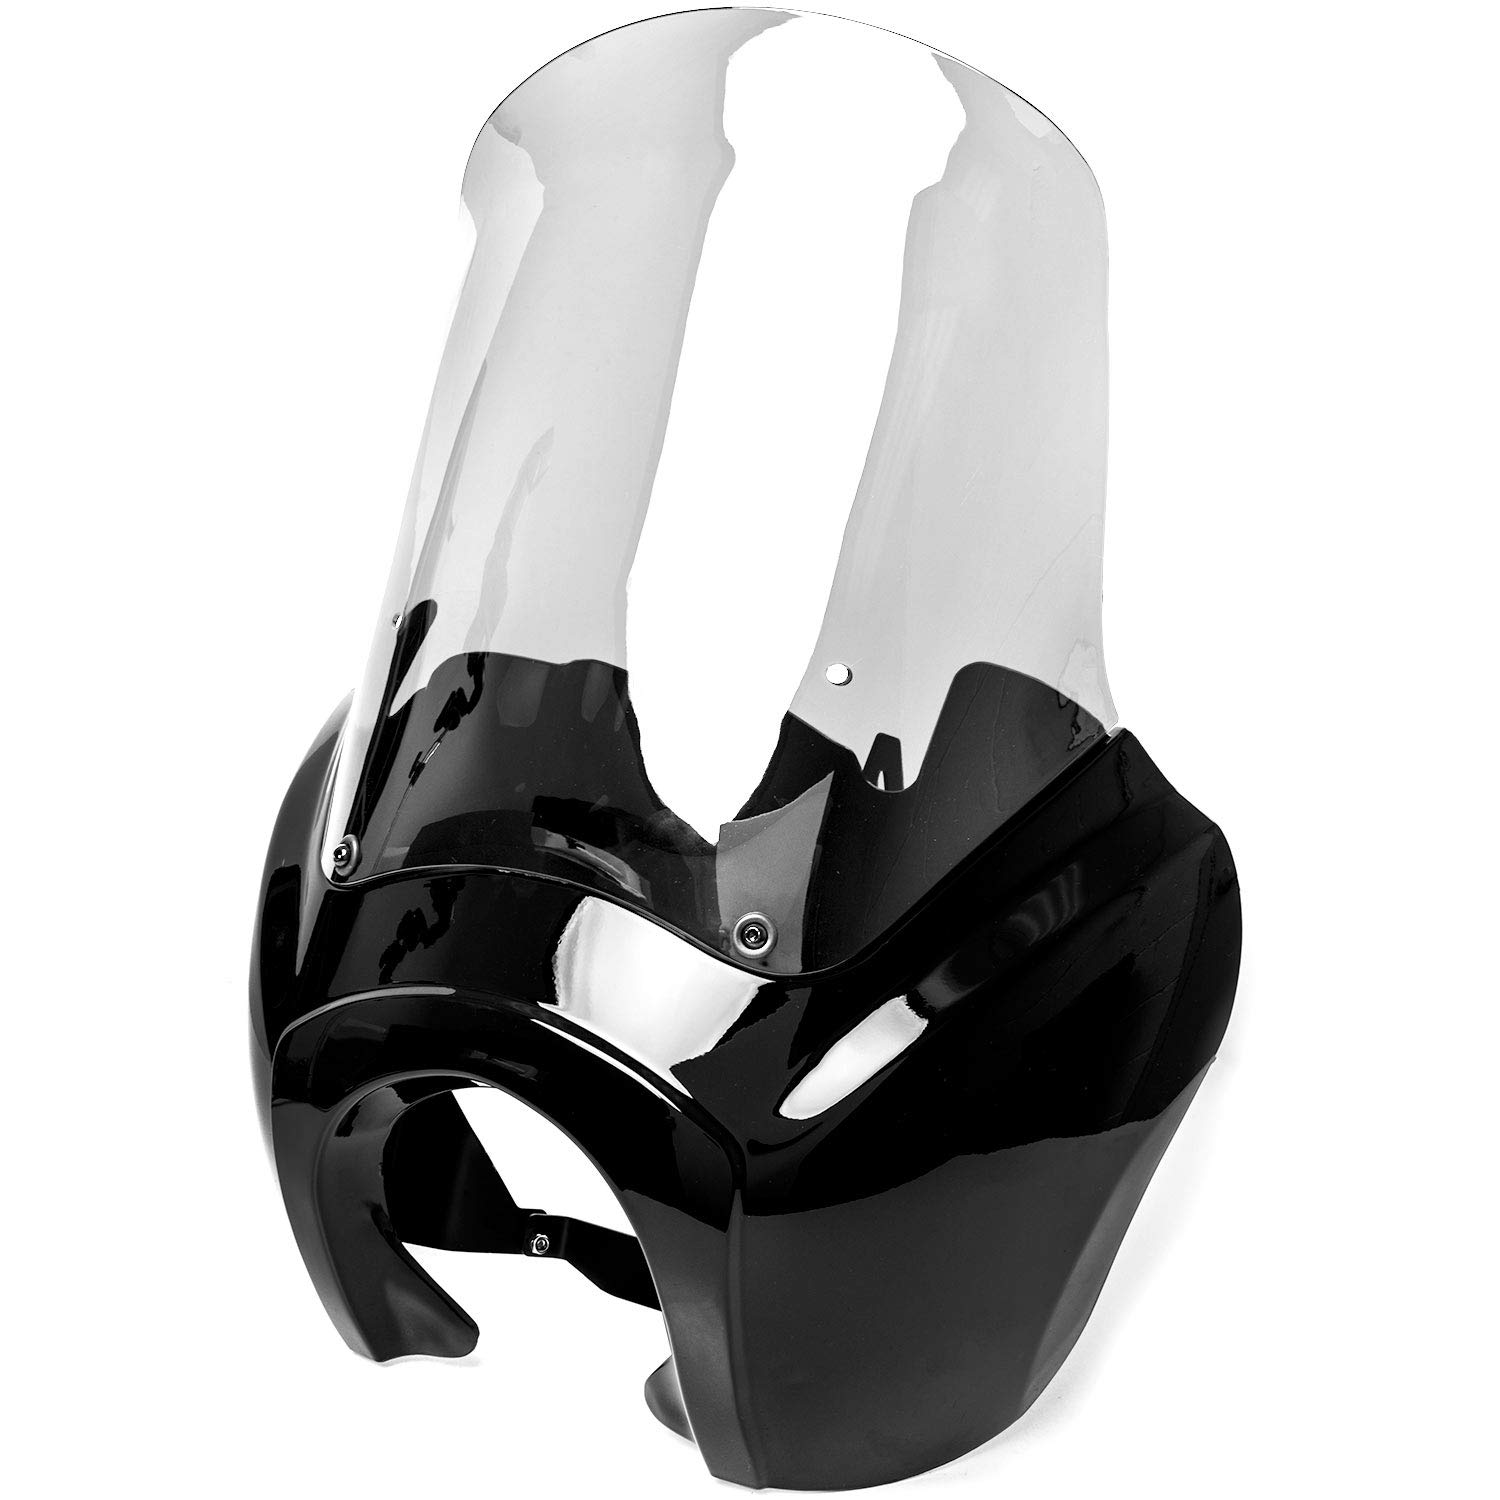 Krator Black & Clear Tall Fairing Windshield Club Style Kit for Harley-Davidson Dyna, Super Glide T-Sport FXDXT, FXR KapscoMoto